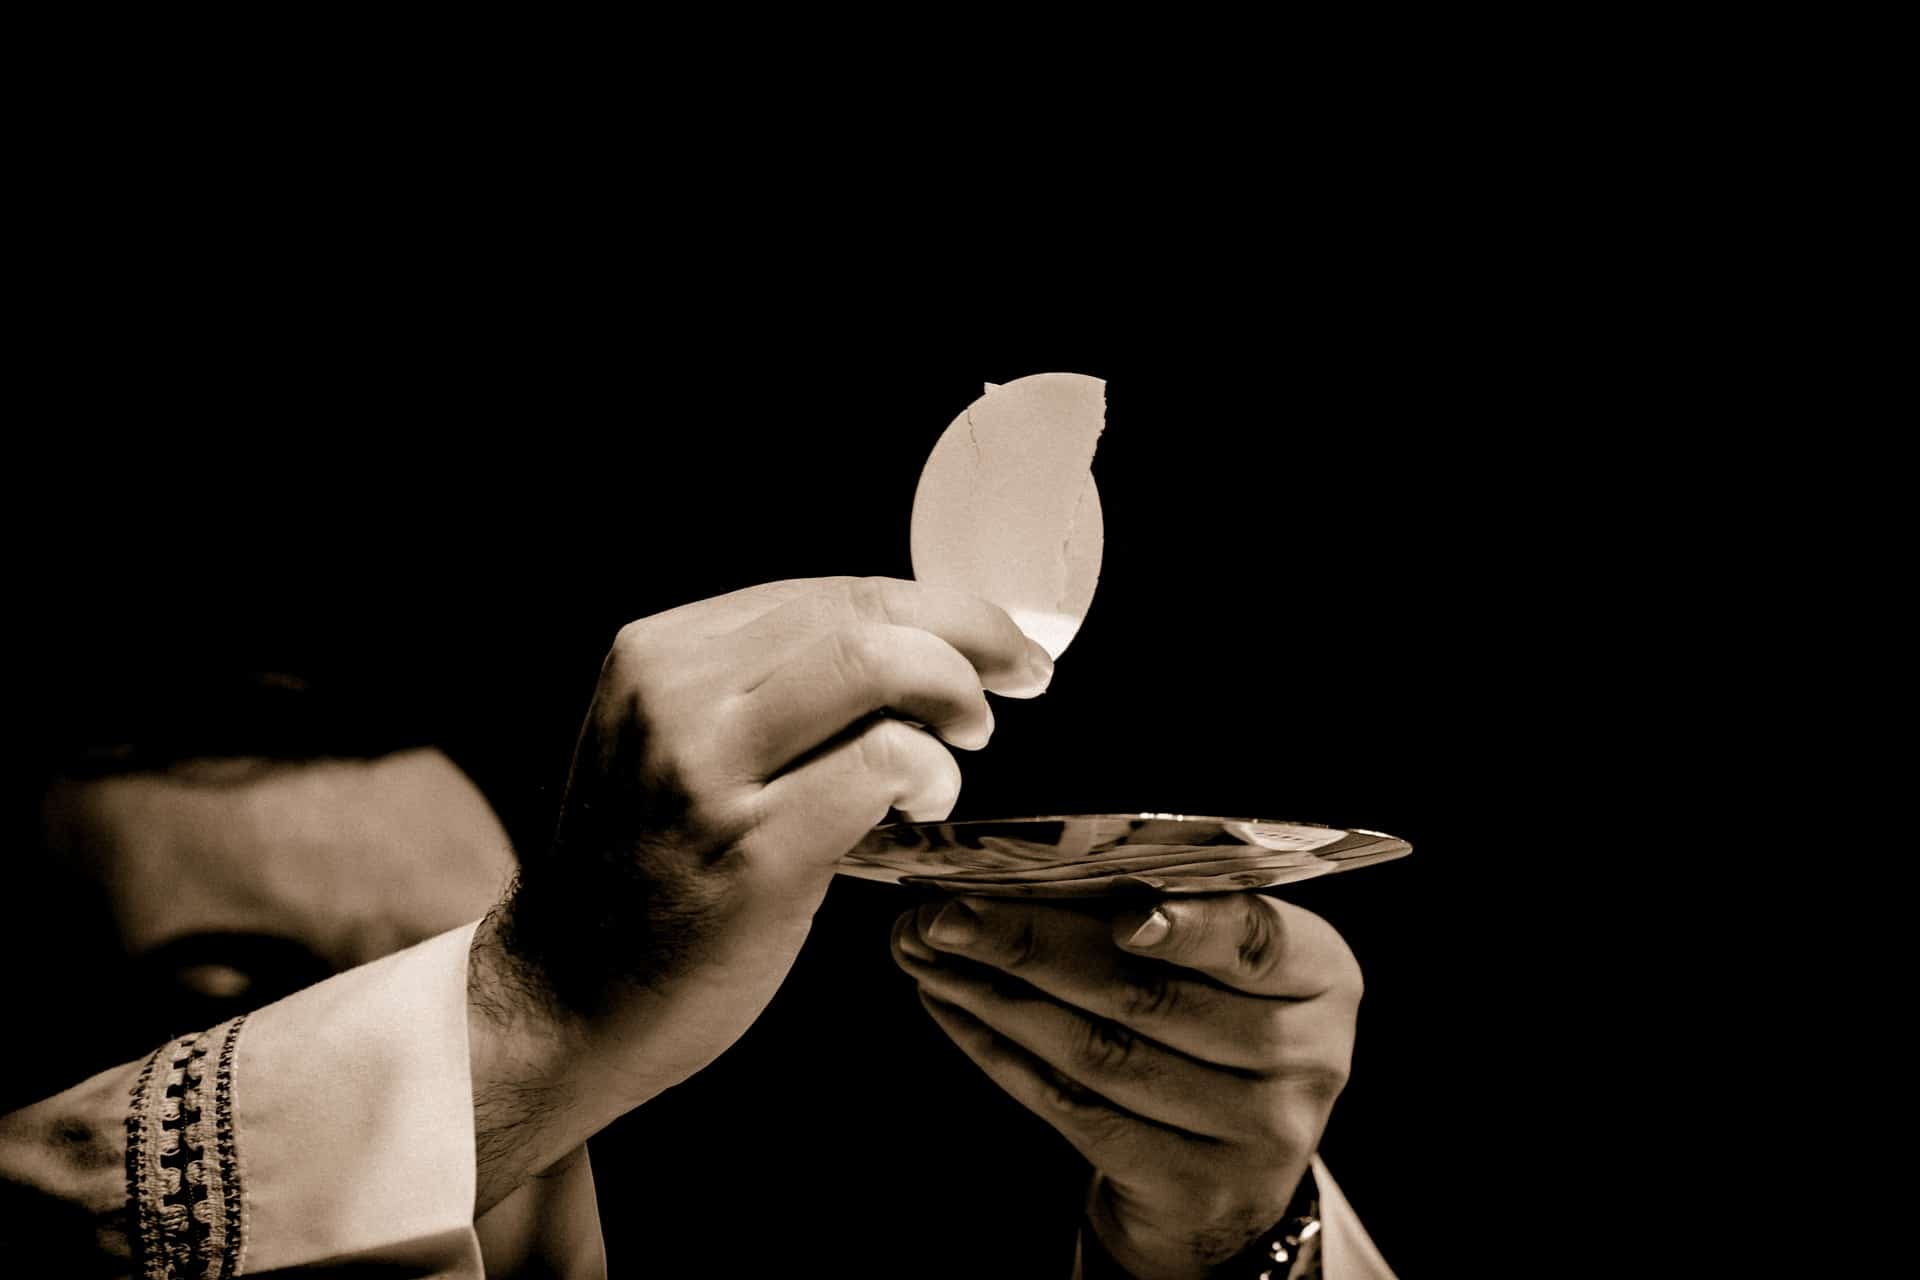 fruits of the eucharist